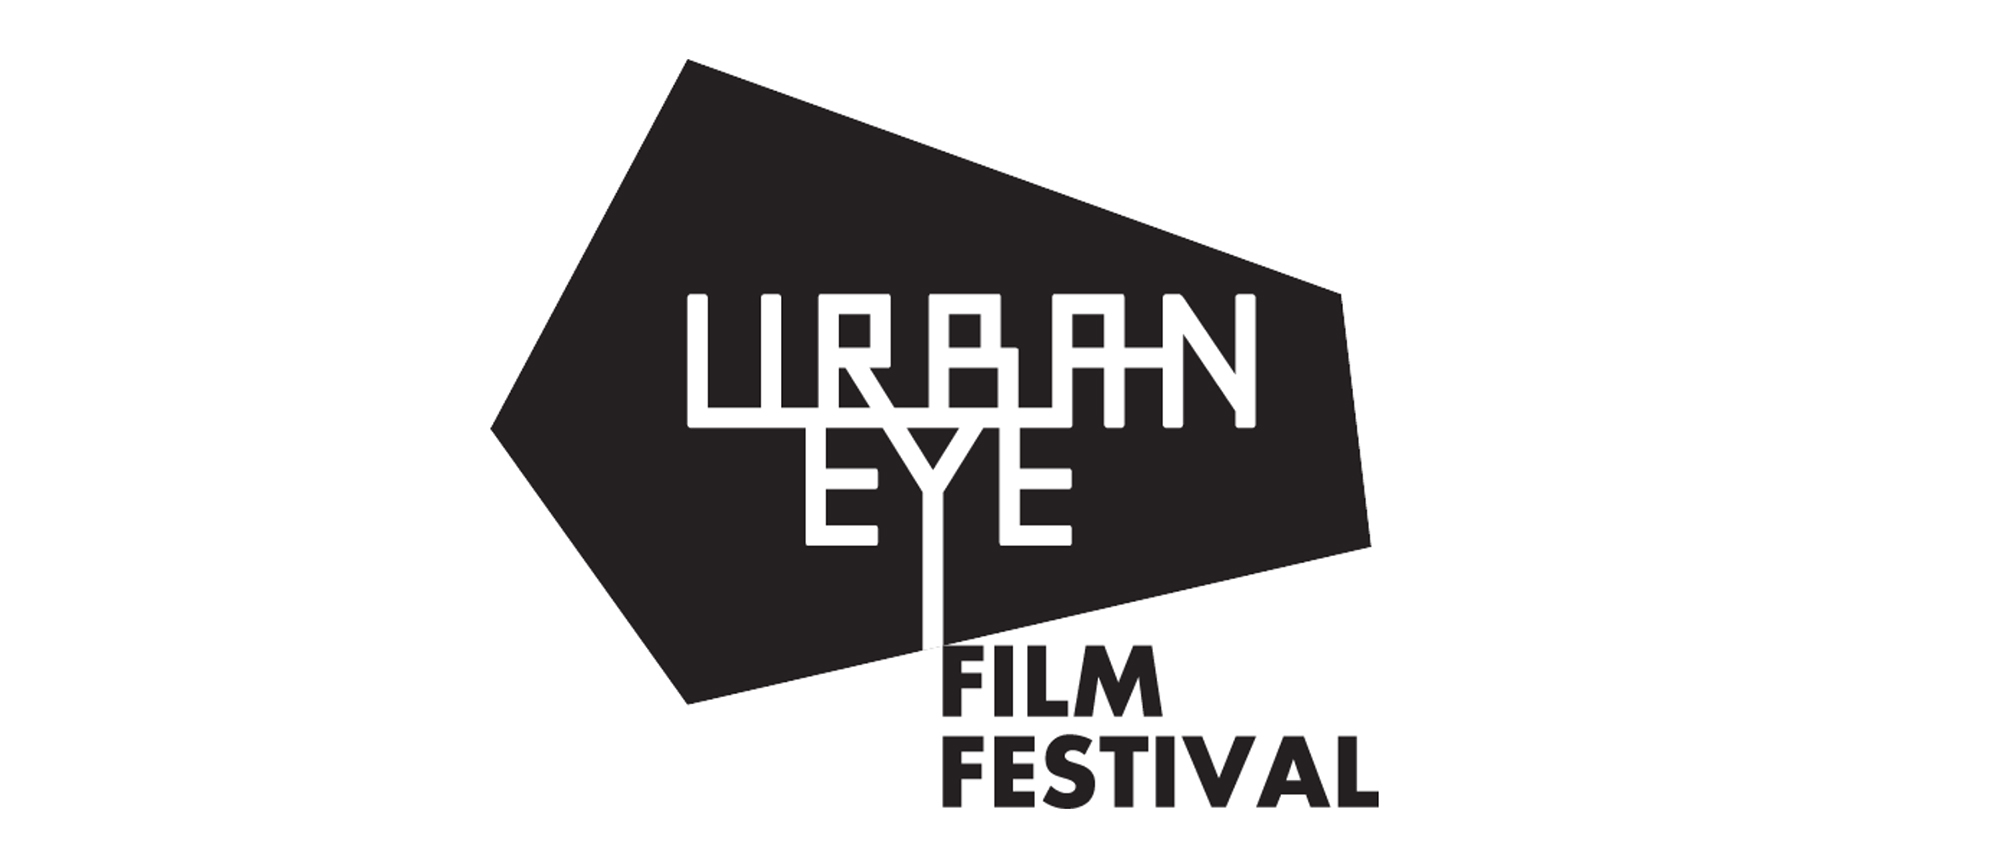 UrbanEye is a platform for ideas based on the link between the city and cinema, opening the dialogue about the places we live in.